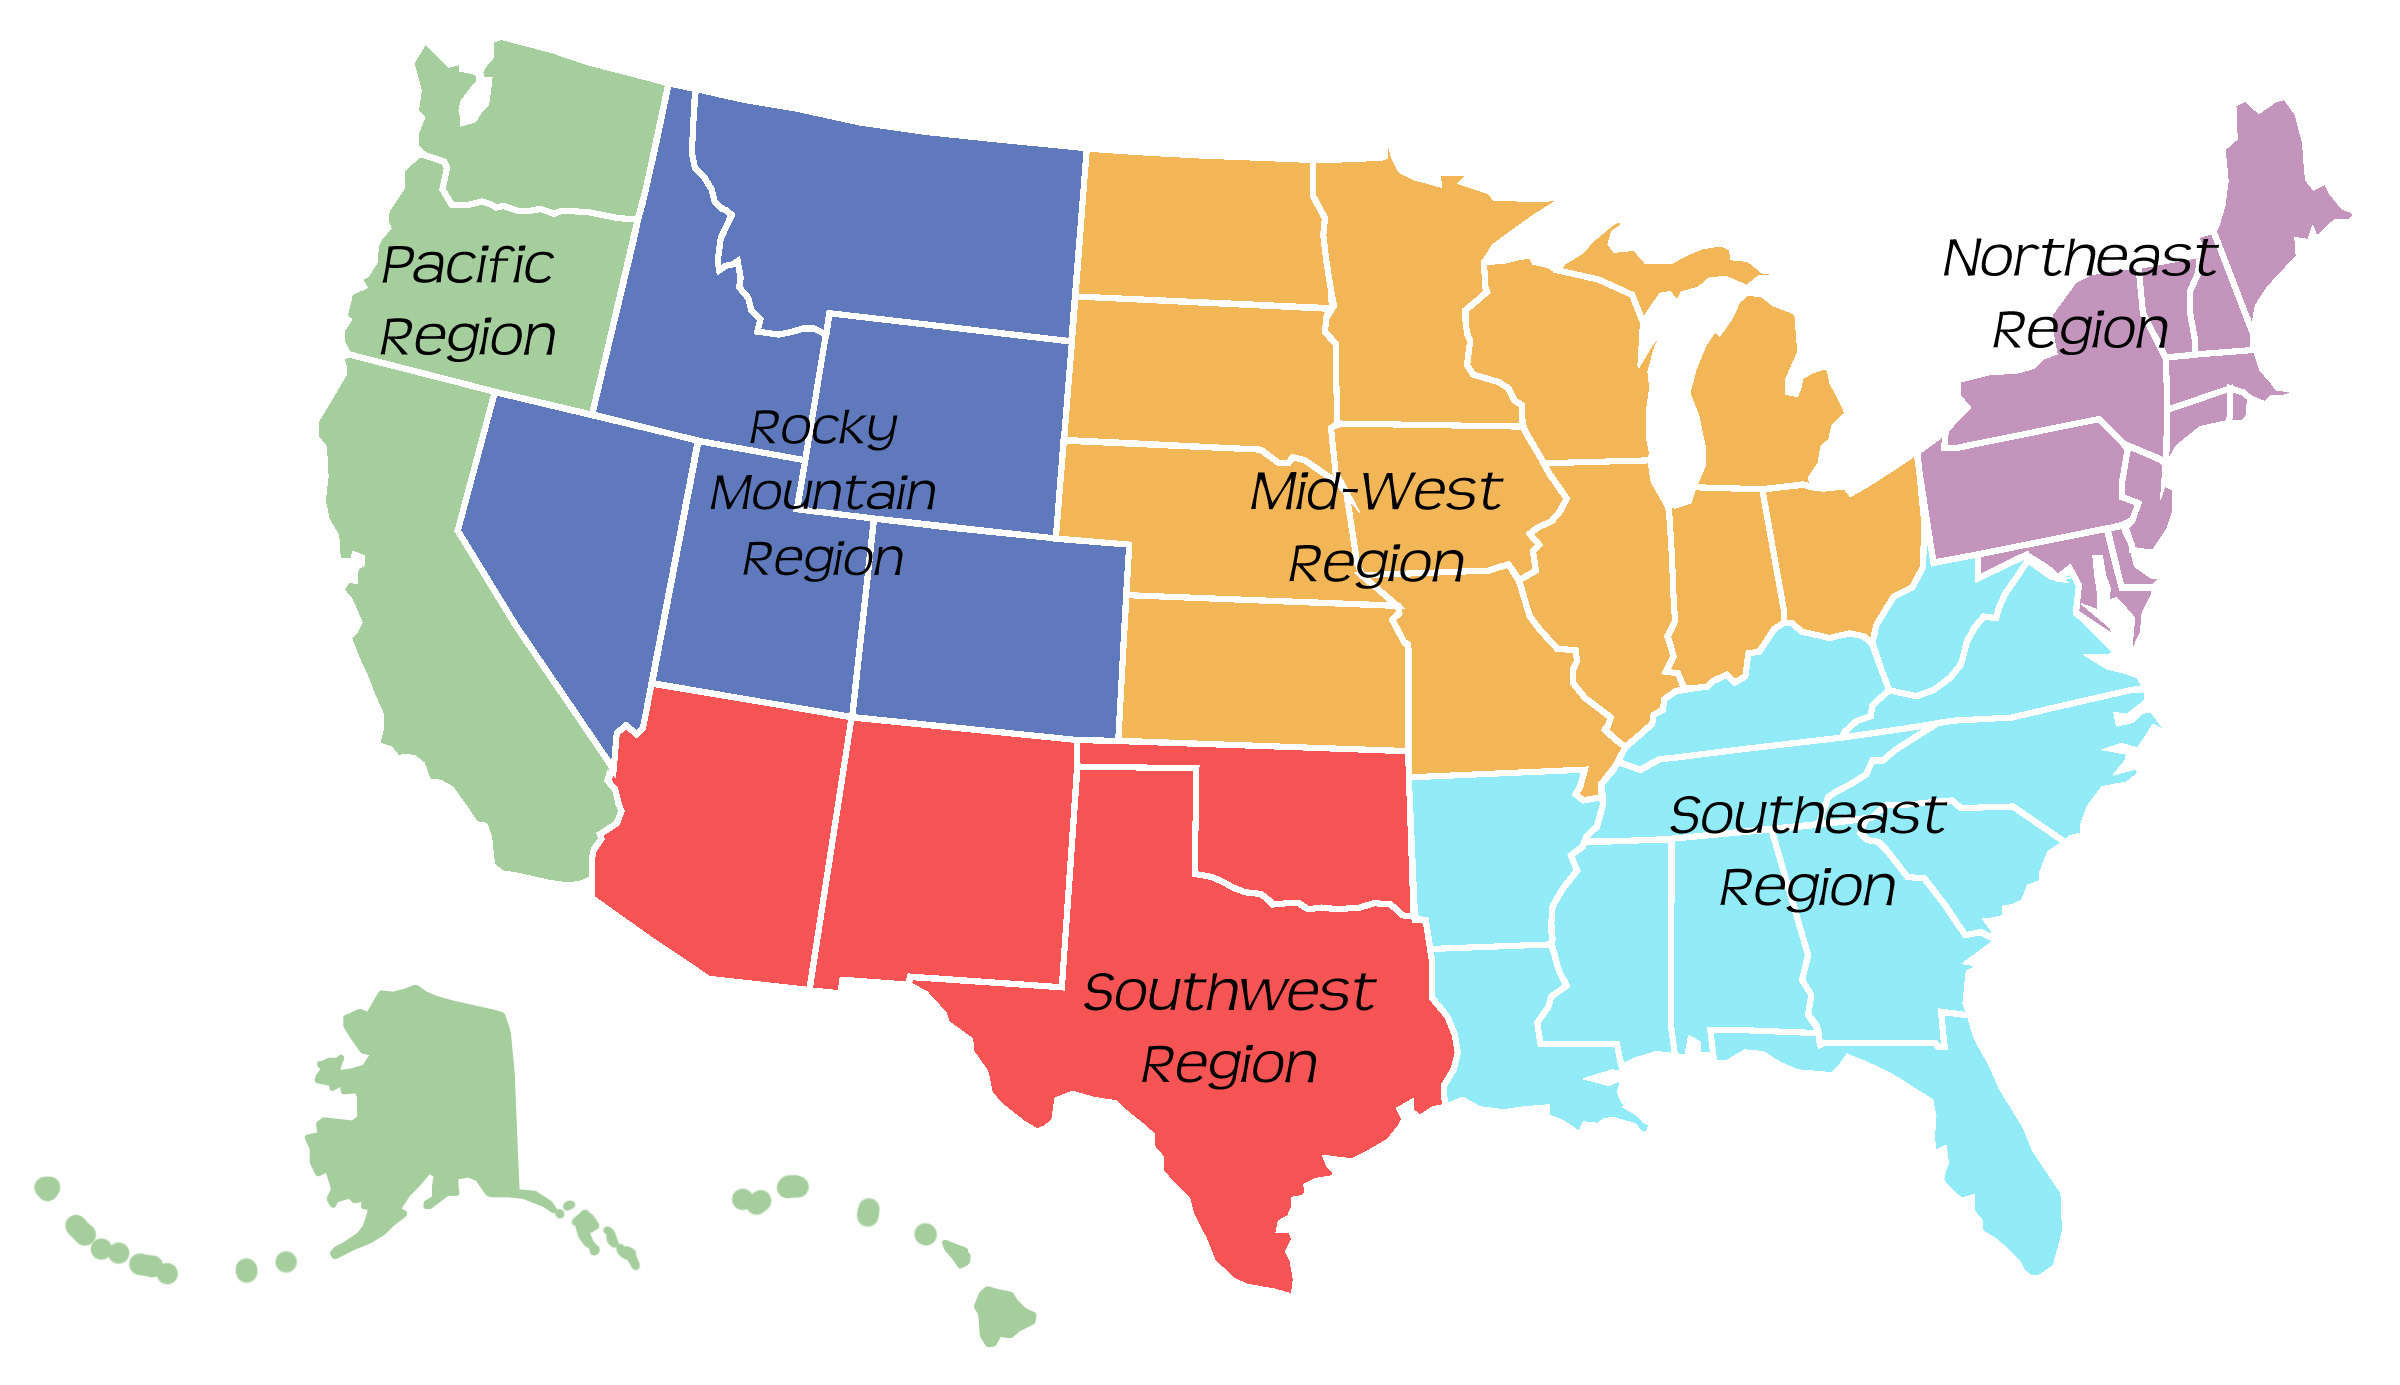 We Should Have Let The South Secede